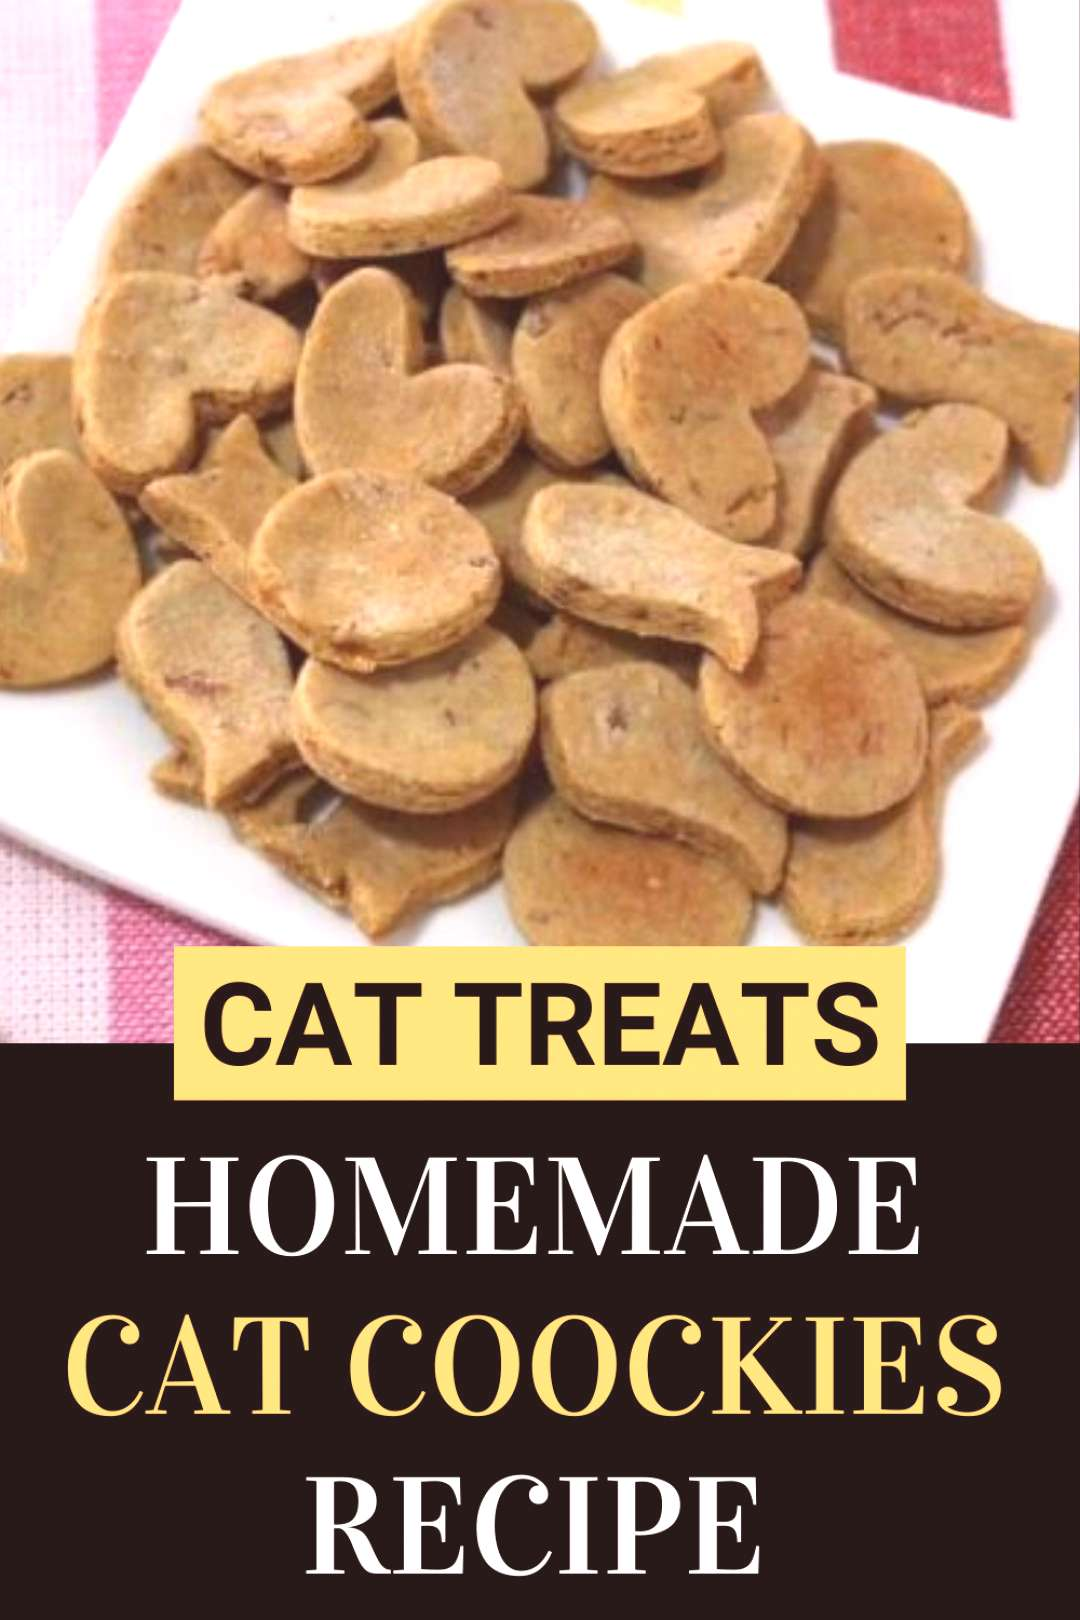 Homemade Cat Cookies Recipe If youre looking for homemade cat treats recipes easy and healthy, thi